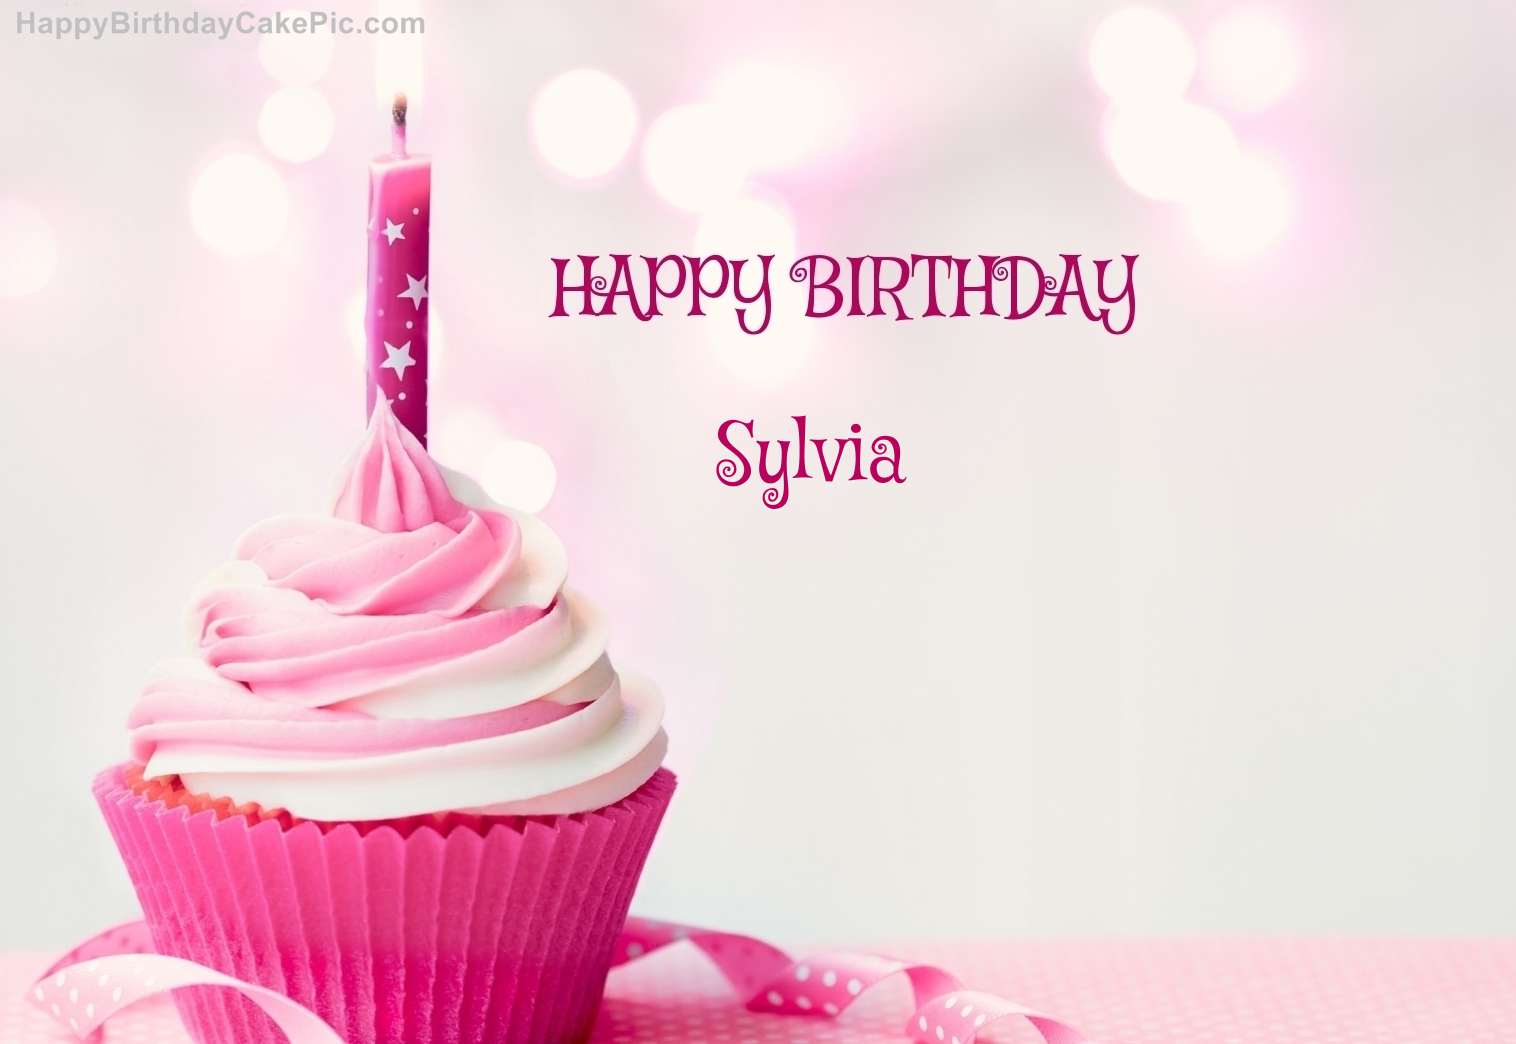 Happy Birthday Cupcake Candle Pink Cake For Sylvia